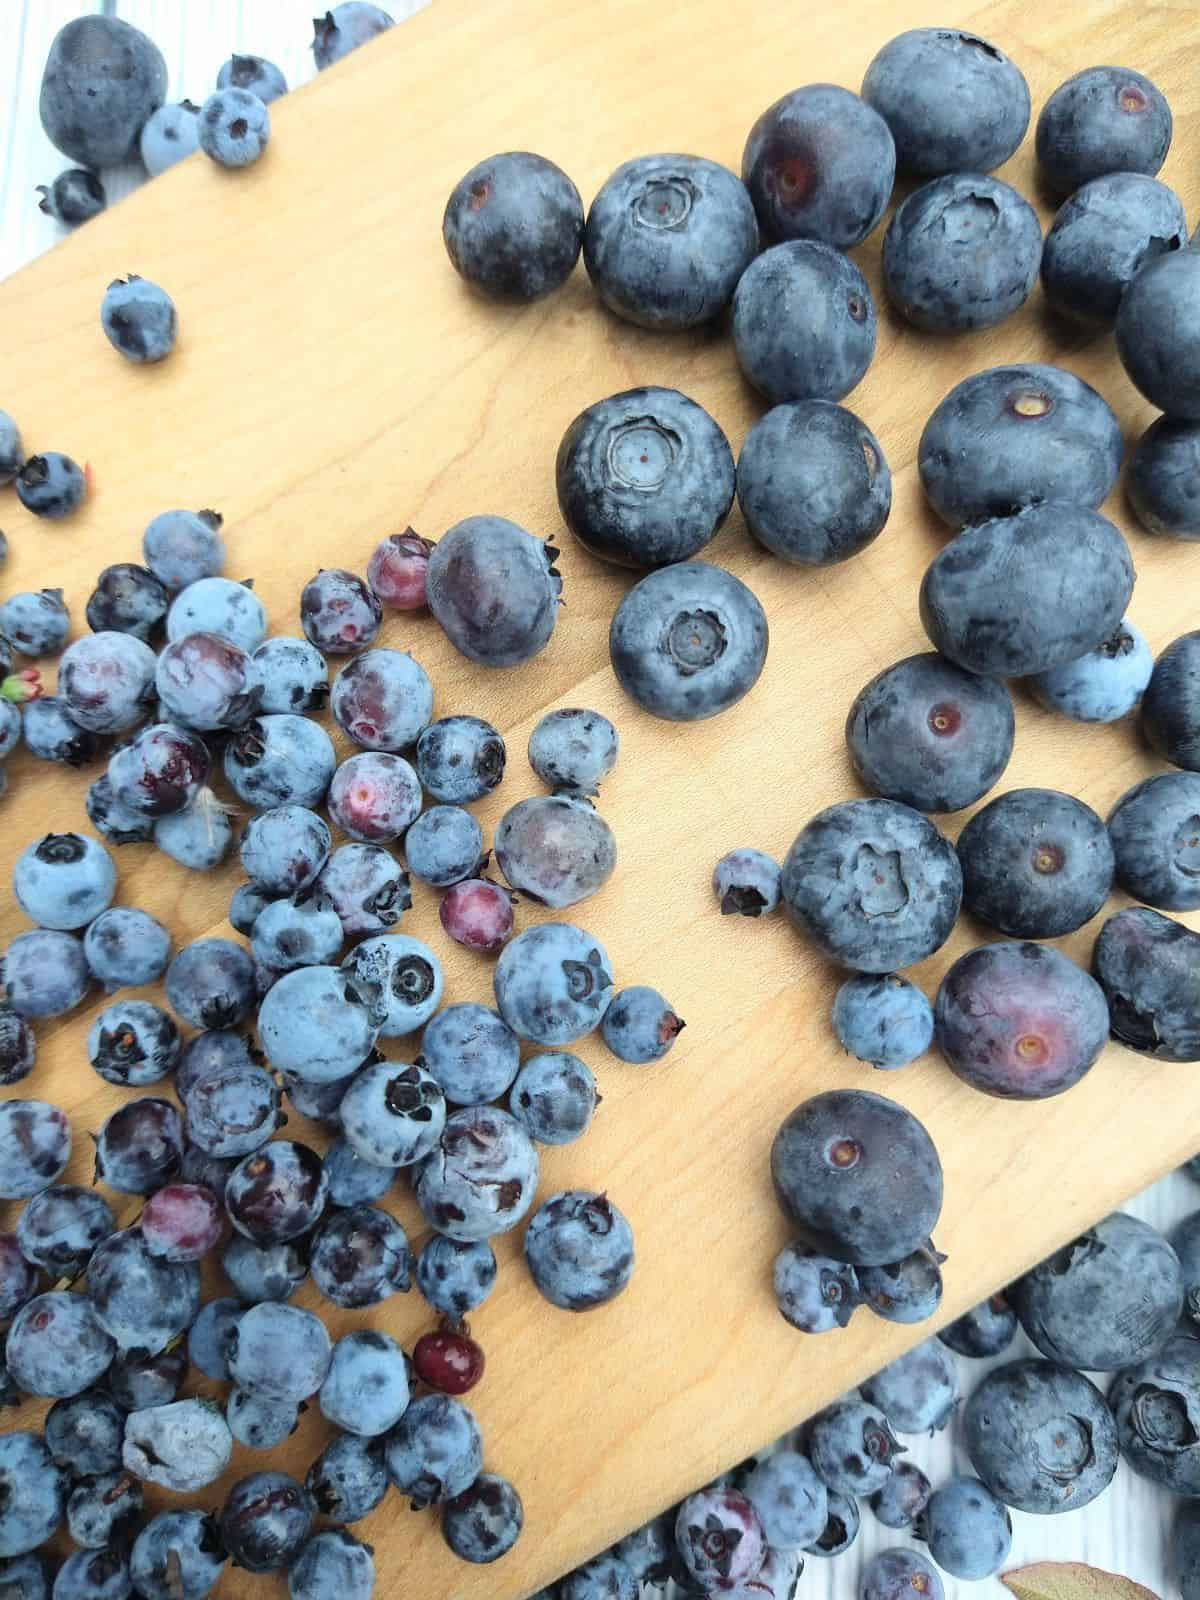 A wood cutting board with regular blueberries next to wild blueberries. You can clearly see how much smaller the wild blueberries are.